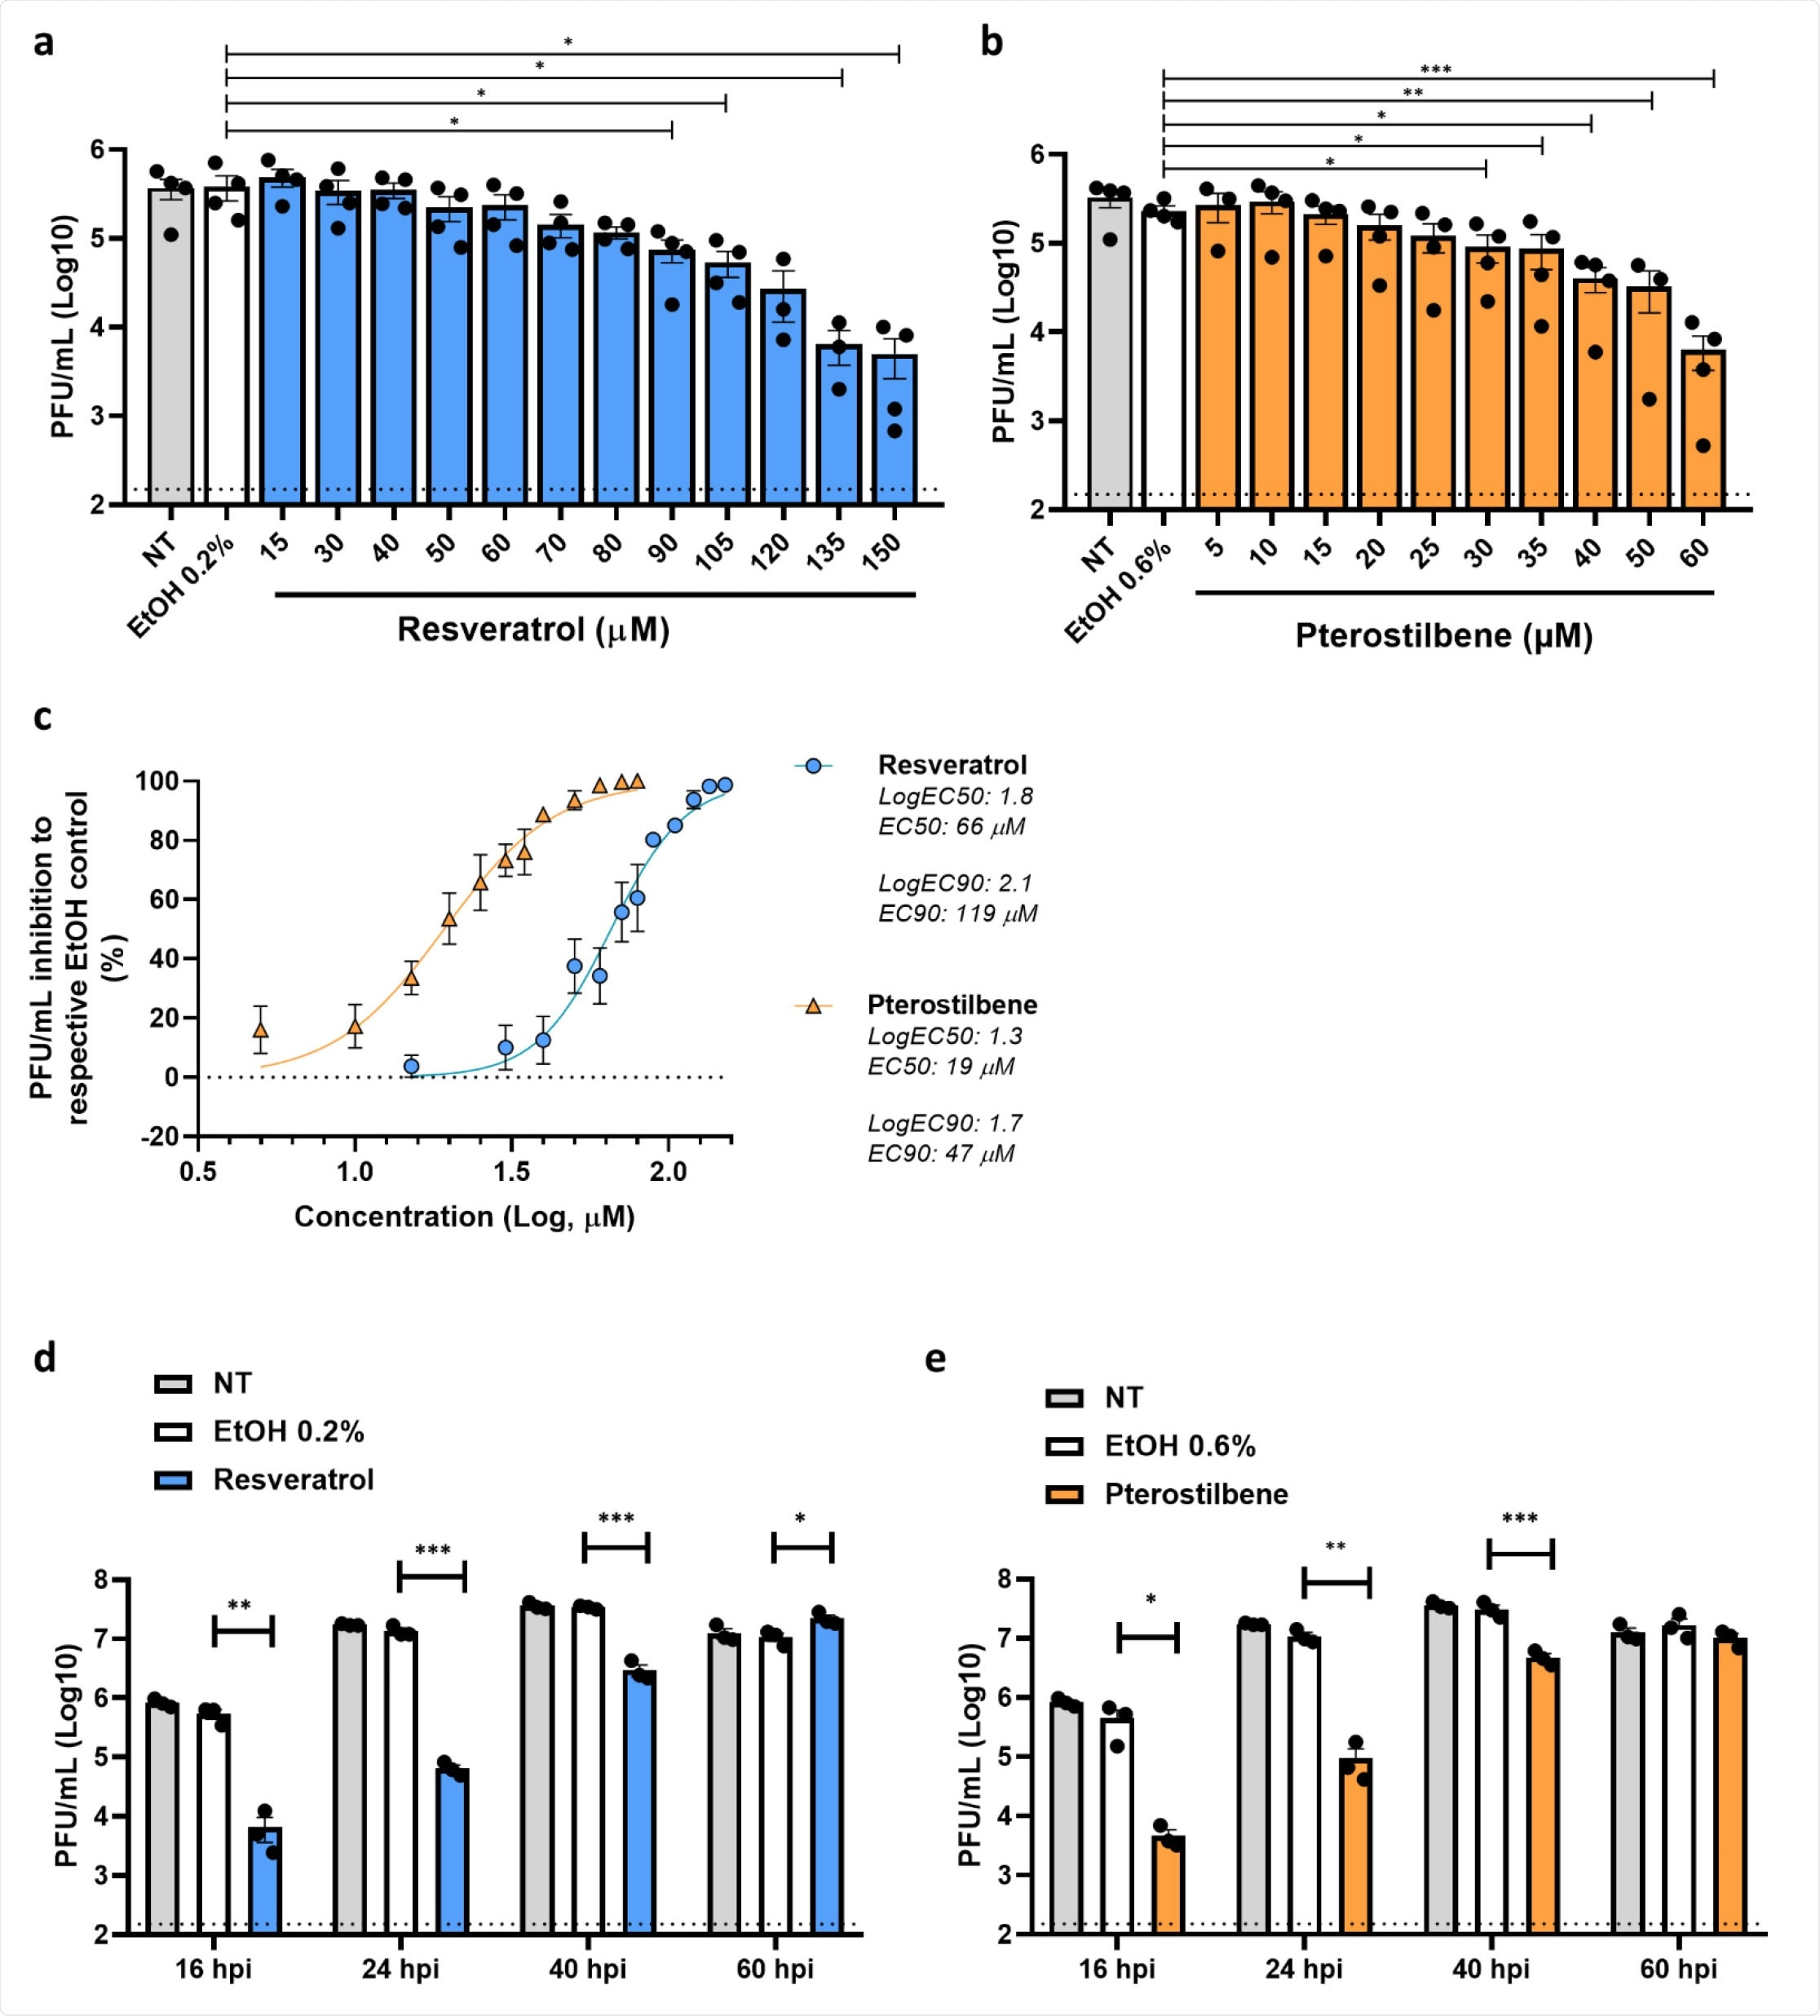 Antiviral effect of resveratrol and pterostilbene towards SARS-CoV-2 in Vero E6 cells. Production of infectious virus by Vero E6 cells inoculated with SARS-CoV-2 at MOI 1 in the absence (NT denotes for non-treated) or presence of increasing concentrations of (a) resveratrol, (b) pterostilbene or the EtOH solvent control. (c) The EC50 and EC90 values determined by non-linear regression analysis. (d,e) Durability of the antiviral effect of (d) resveratrol and (e) pterostilbene at 16, 24, 40 and 60 hours postinoculation (hpi). Dotted line indicates the threshold of detection. Data are represented as mean ± SEM of at least three independent experiments. Each symbol represents data from a single independent experiment. Student T test was used to evaluate statistical differences and a p value ≤ 0.05 was considered significant with *p ≤ 0.05, **p ≤ 0.01 and ***p ≤ 0.001. In the absence of '*' the data is non-significant.